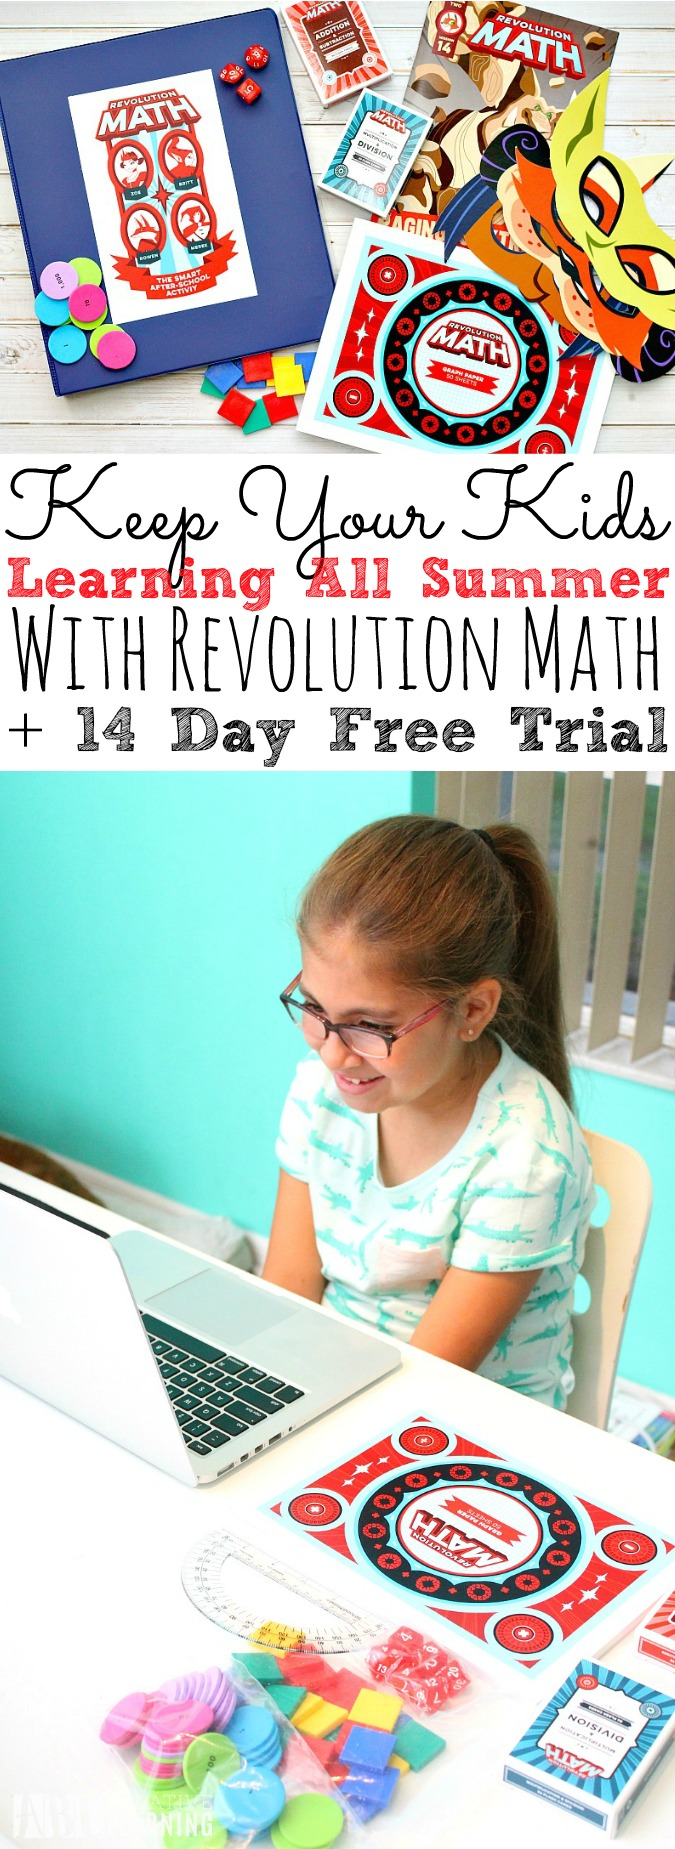 Keep Your Kids Learning All Summer With Revolution Math + 14 Day FREE Trial - simplytodaylife.com